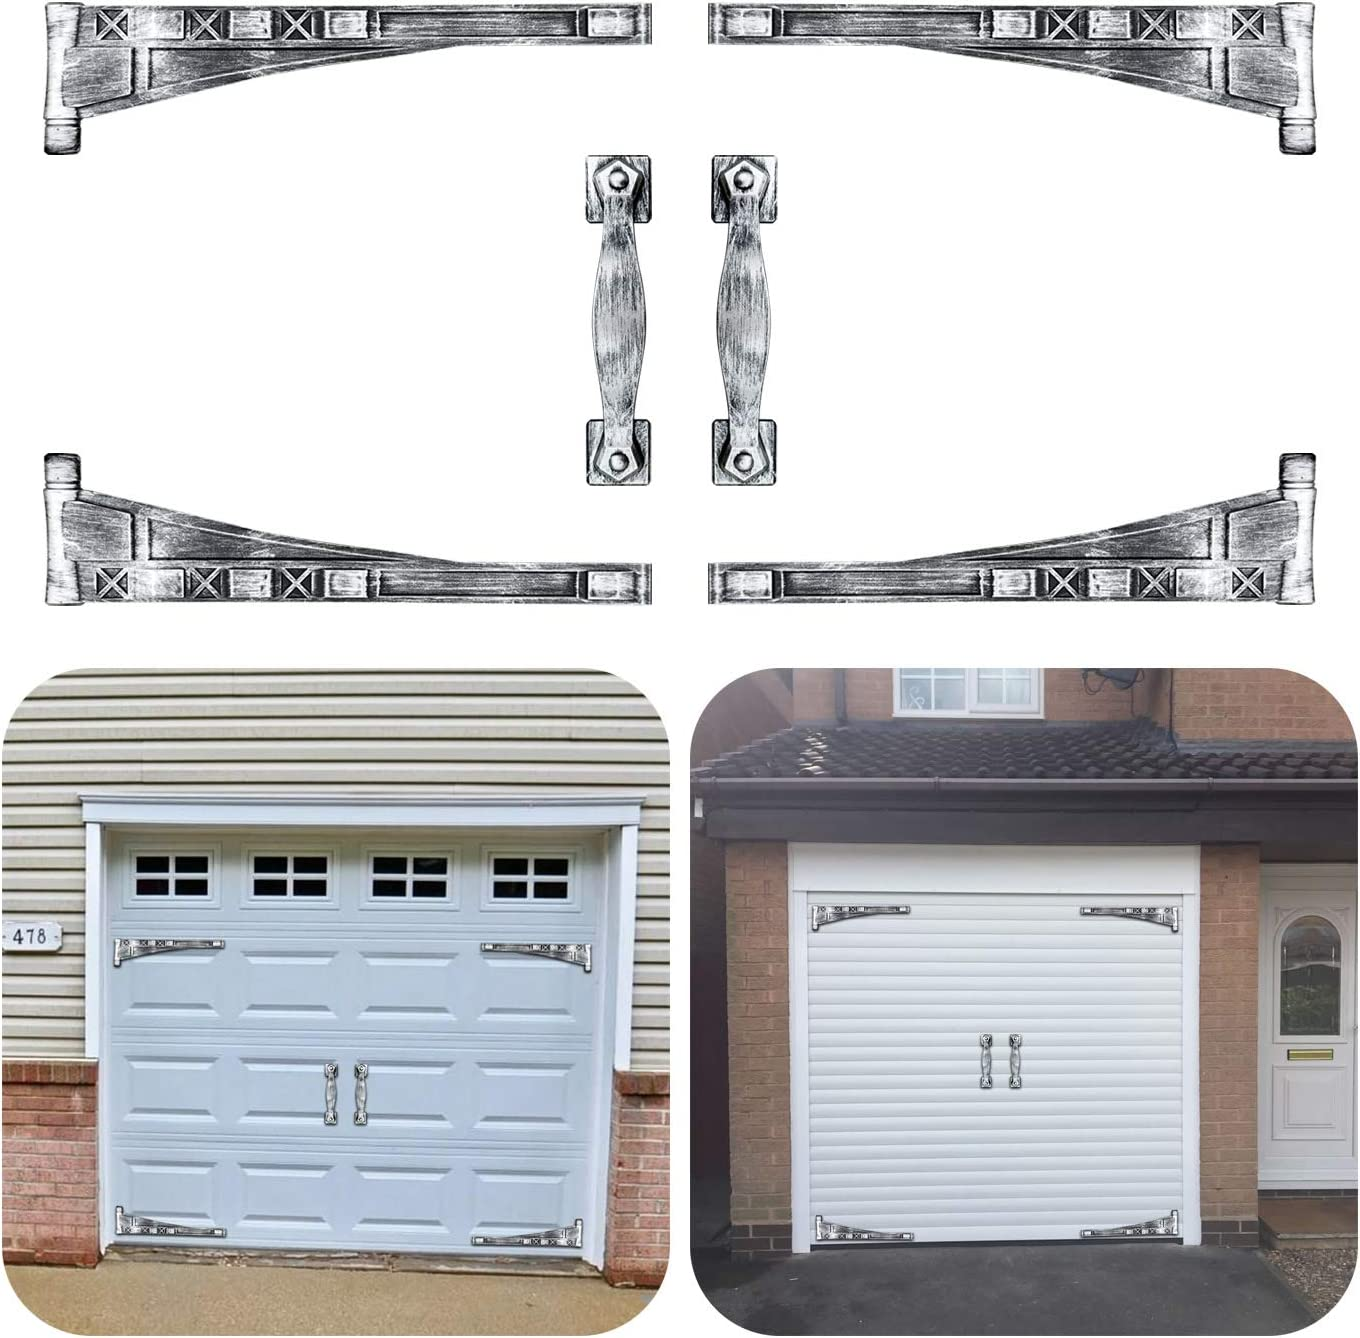 Strong Magnet Mounted//Antique Silver Magnetic Garage Door Decorative Hardware Accents Kit// 4 Hinges /& 2 Square Style Handles